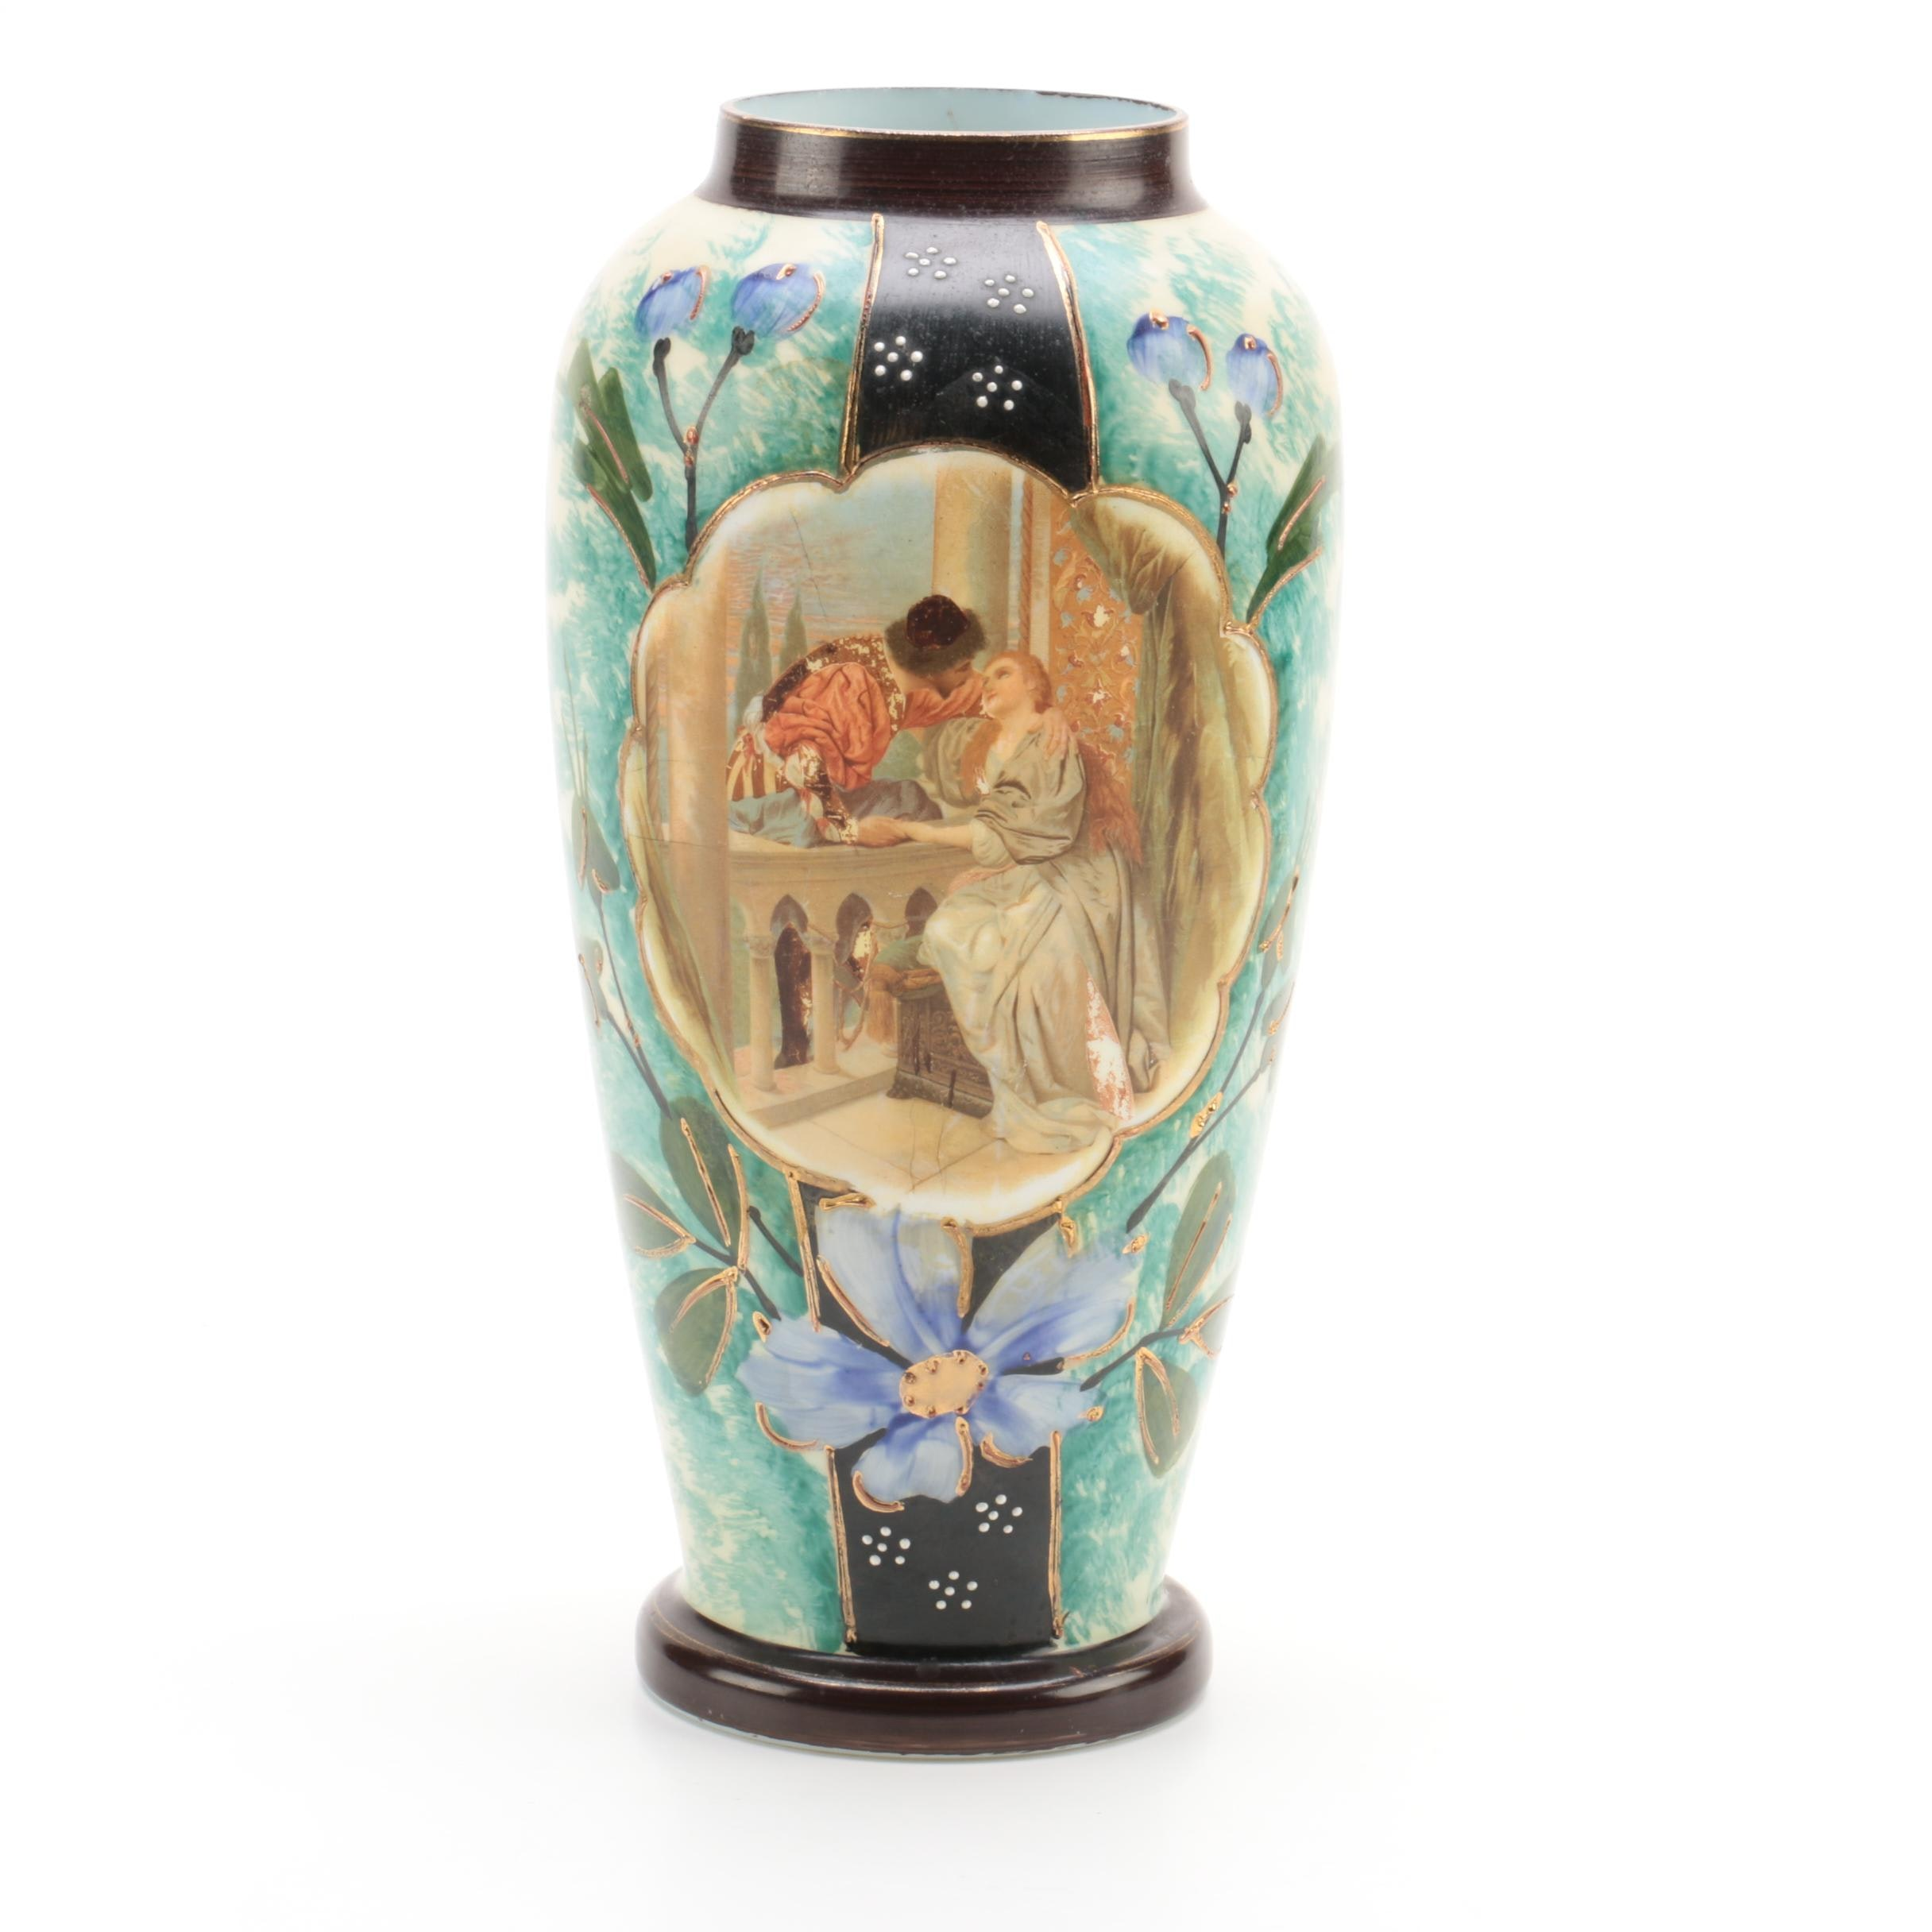 Austrian Painted Glass Vase with Shakespearian Imagery